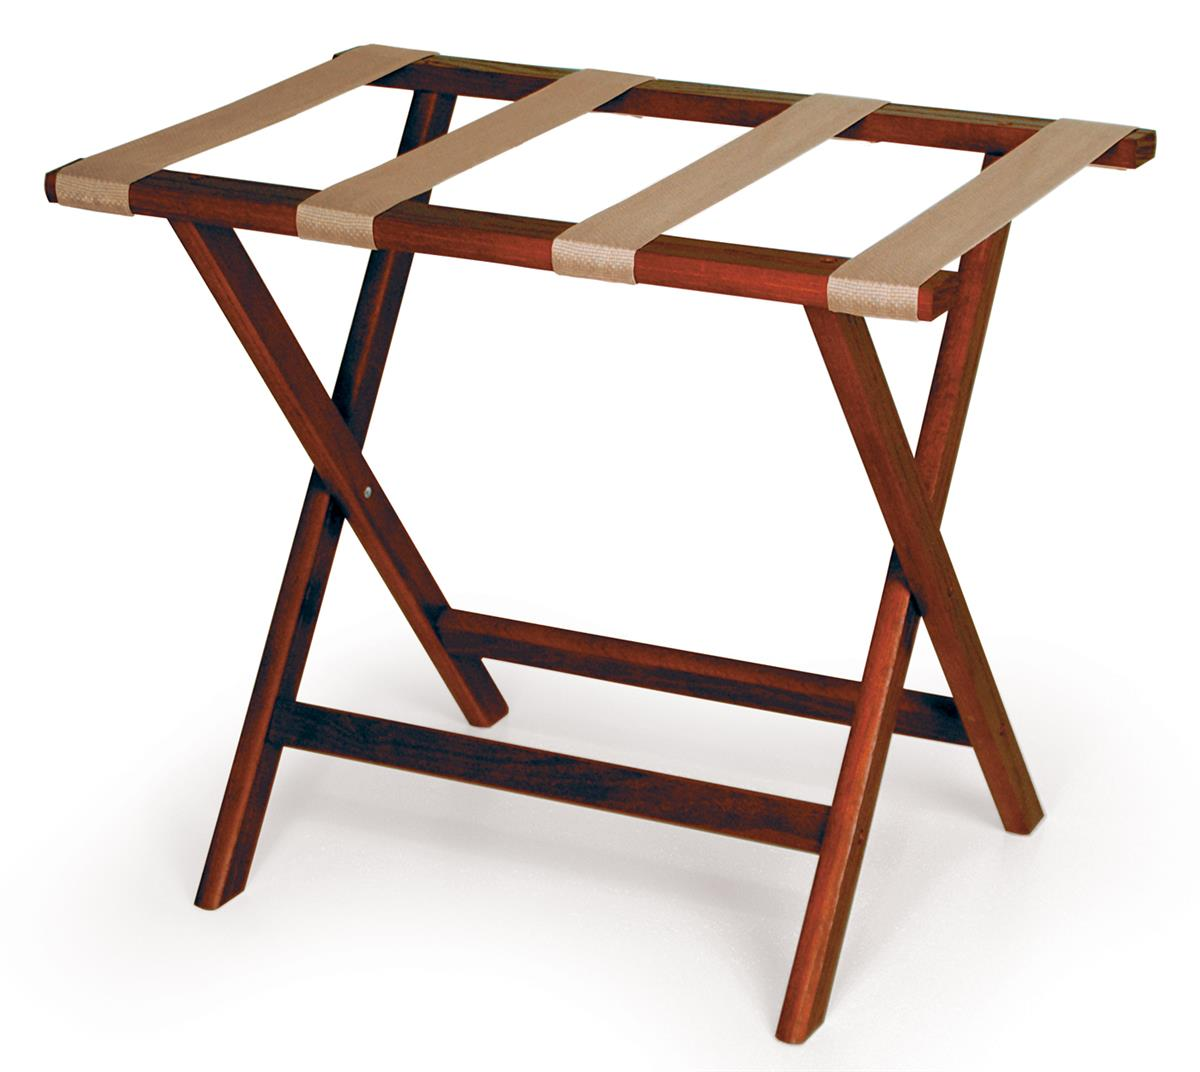 Wood Luggage Rack | Red Mahogany w/ Tan Straps